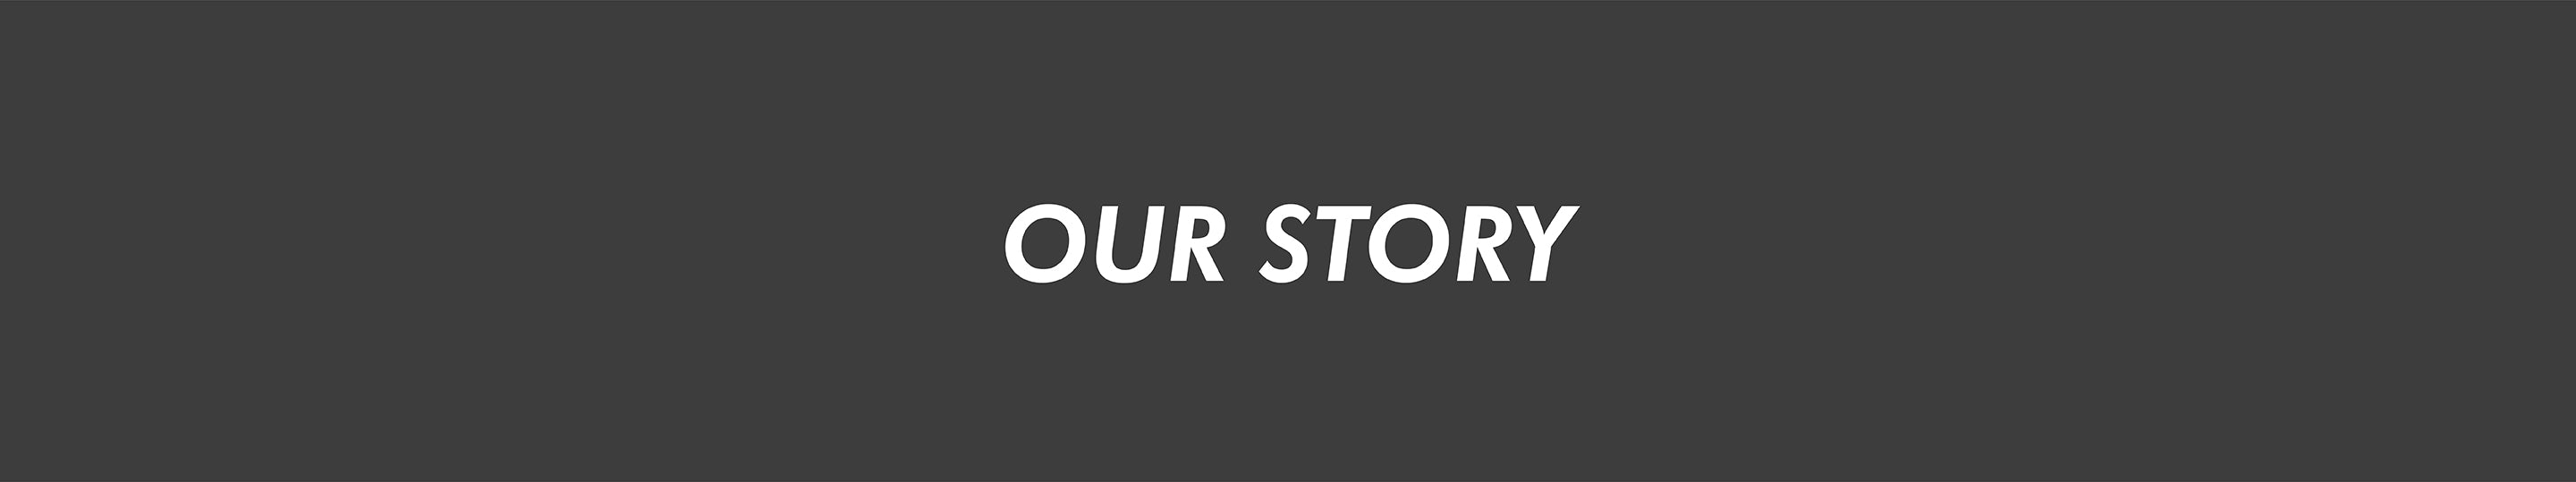 OUR STORY - Banner